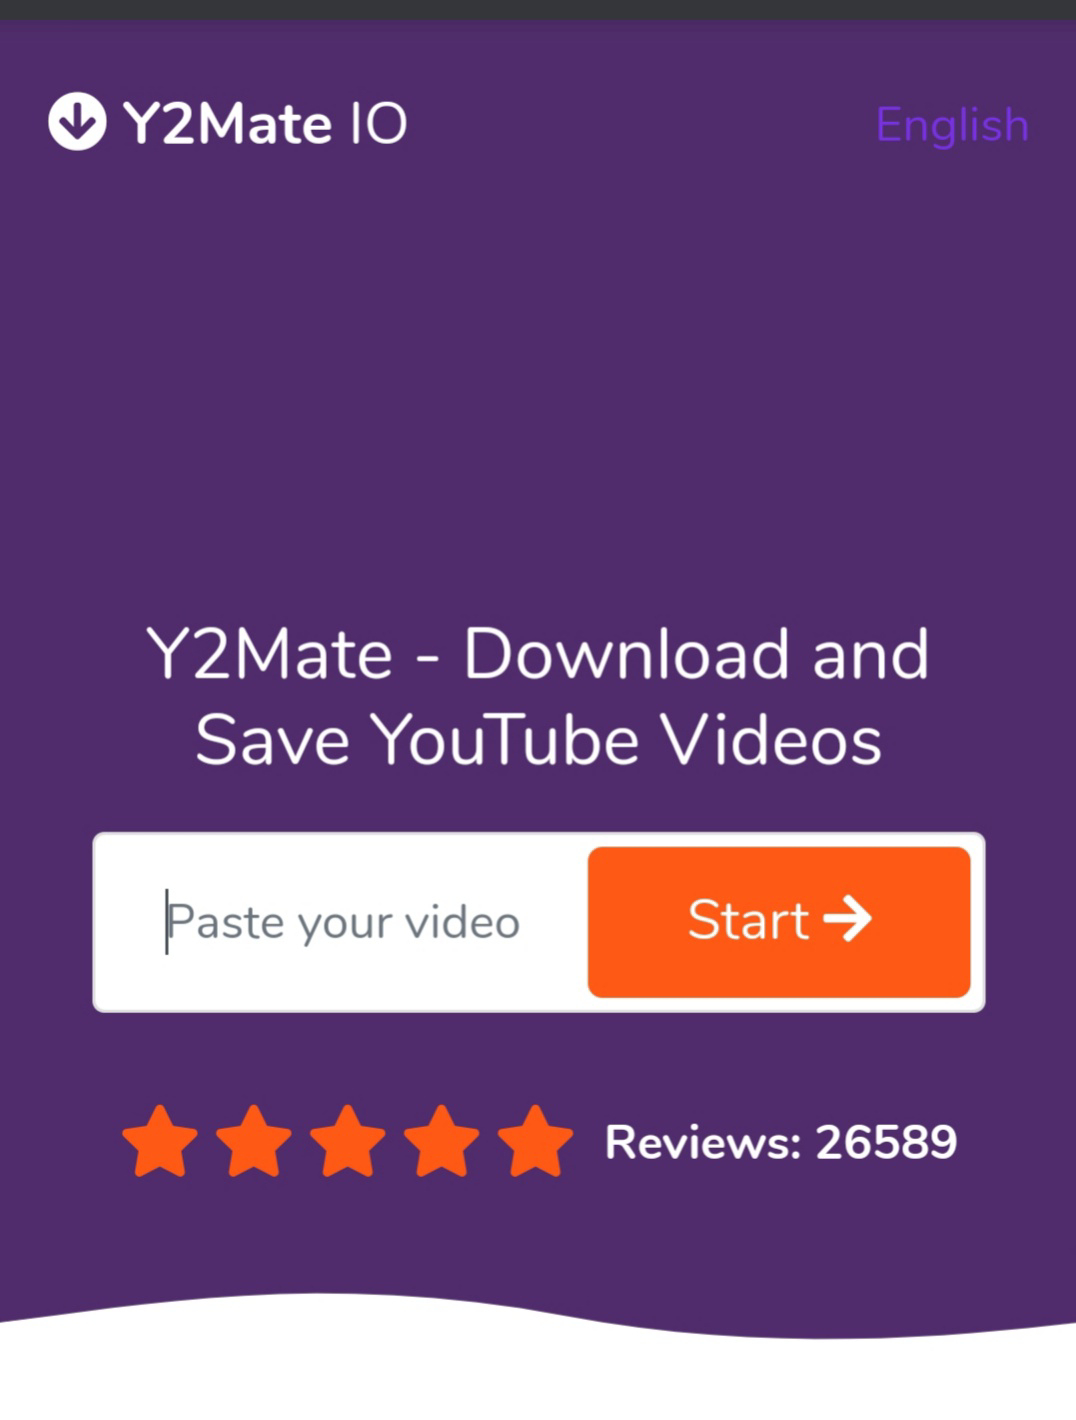 Y2mate Guru Mp4 Download : y2mate, download, Y2Mate, Download, Youtube, Vedios, Naisky, Website, Estimated, Worth, 11,905,920.00, Daily, Income, Around, 11,024.00.